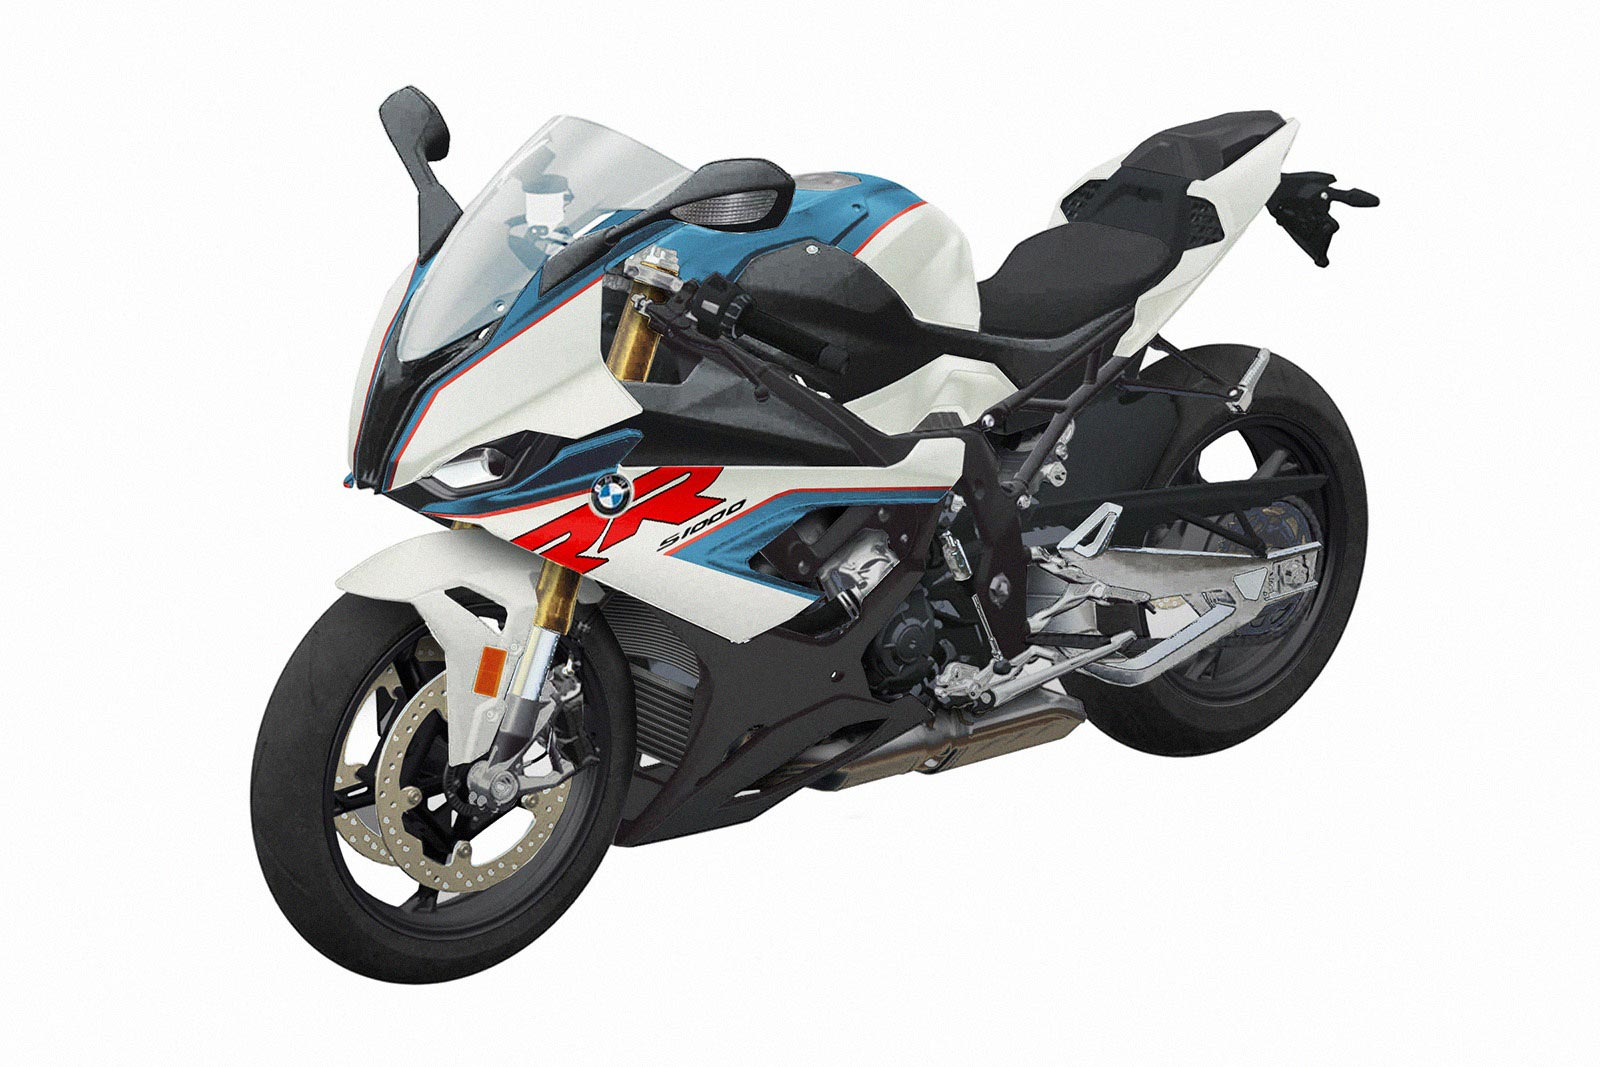 here\u0027s the 2019 bmw s1000rr, now with some color asphalt \u0026 rubberhere\u0027s the 2019 bmw s1000rr, now with some color